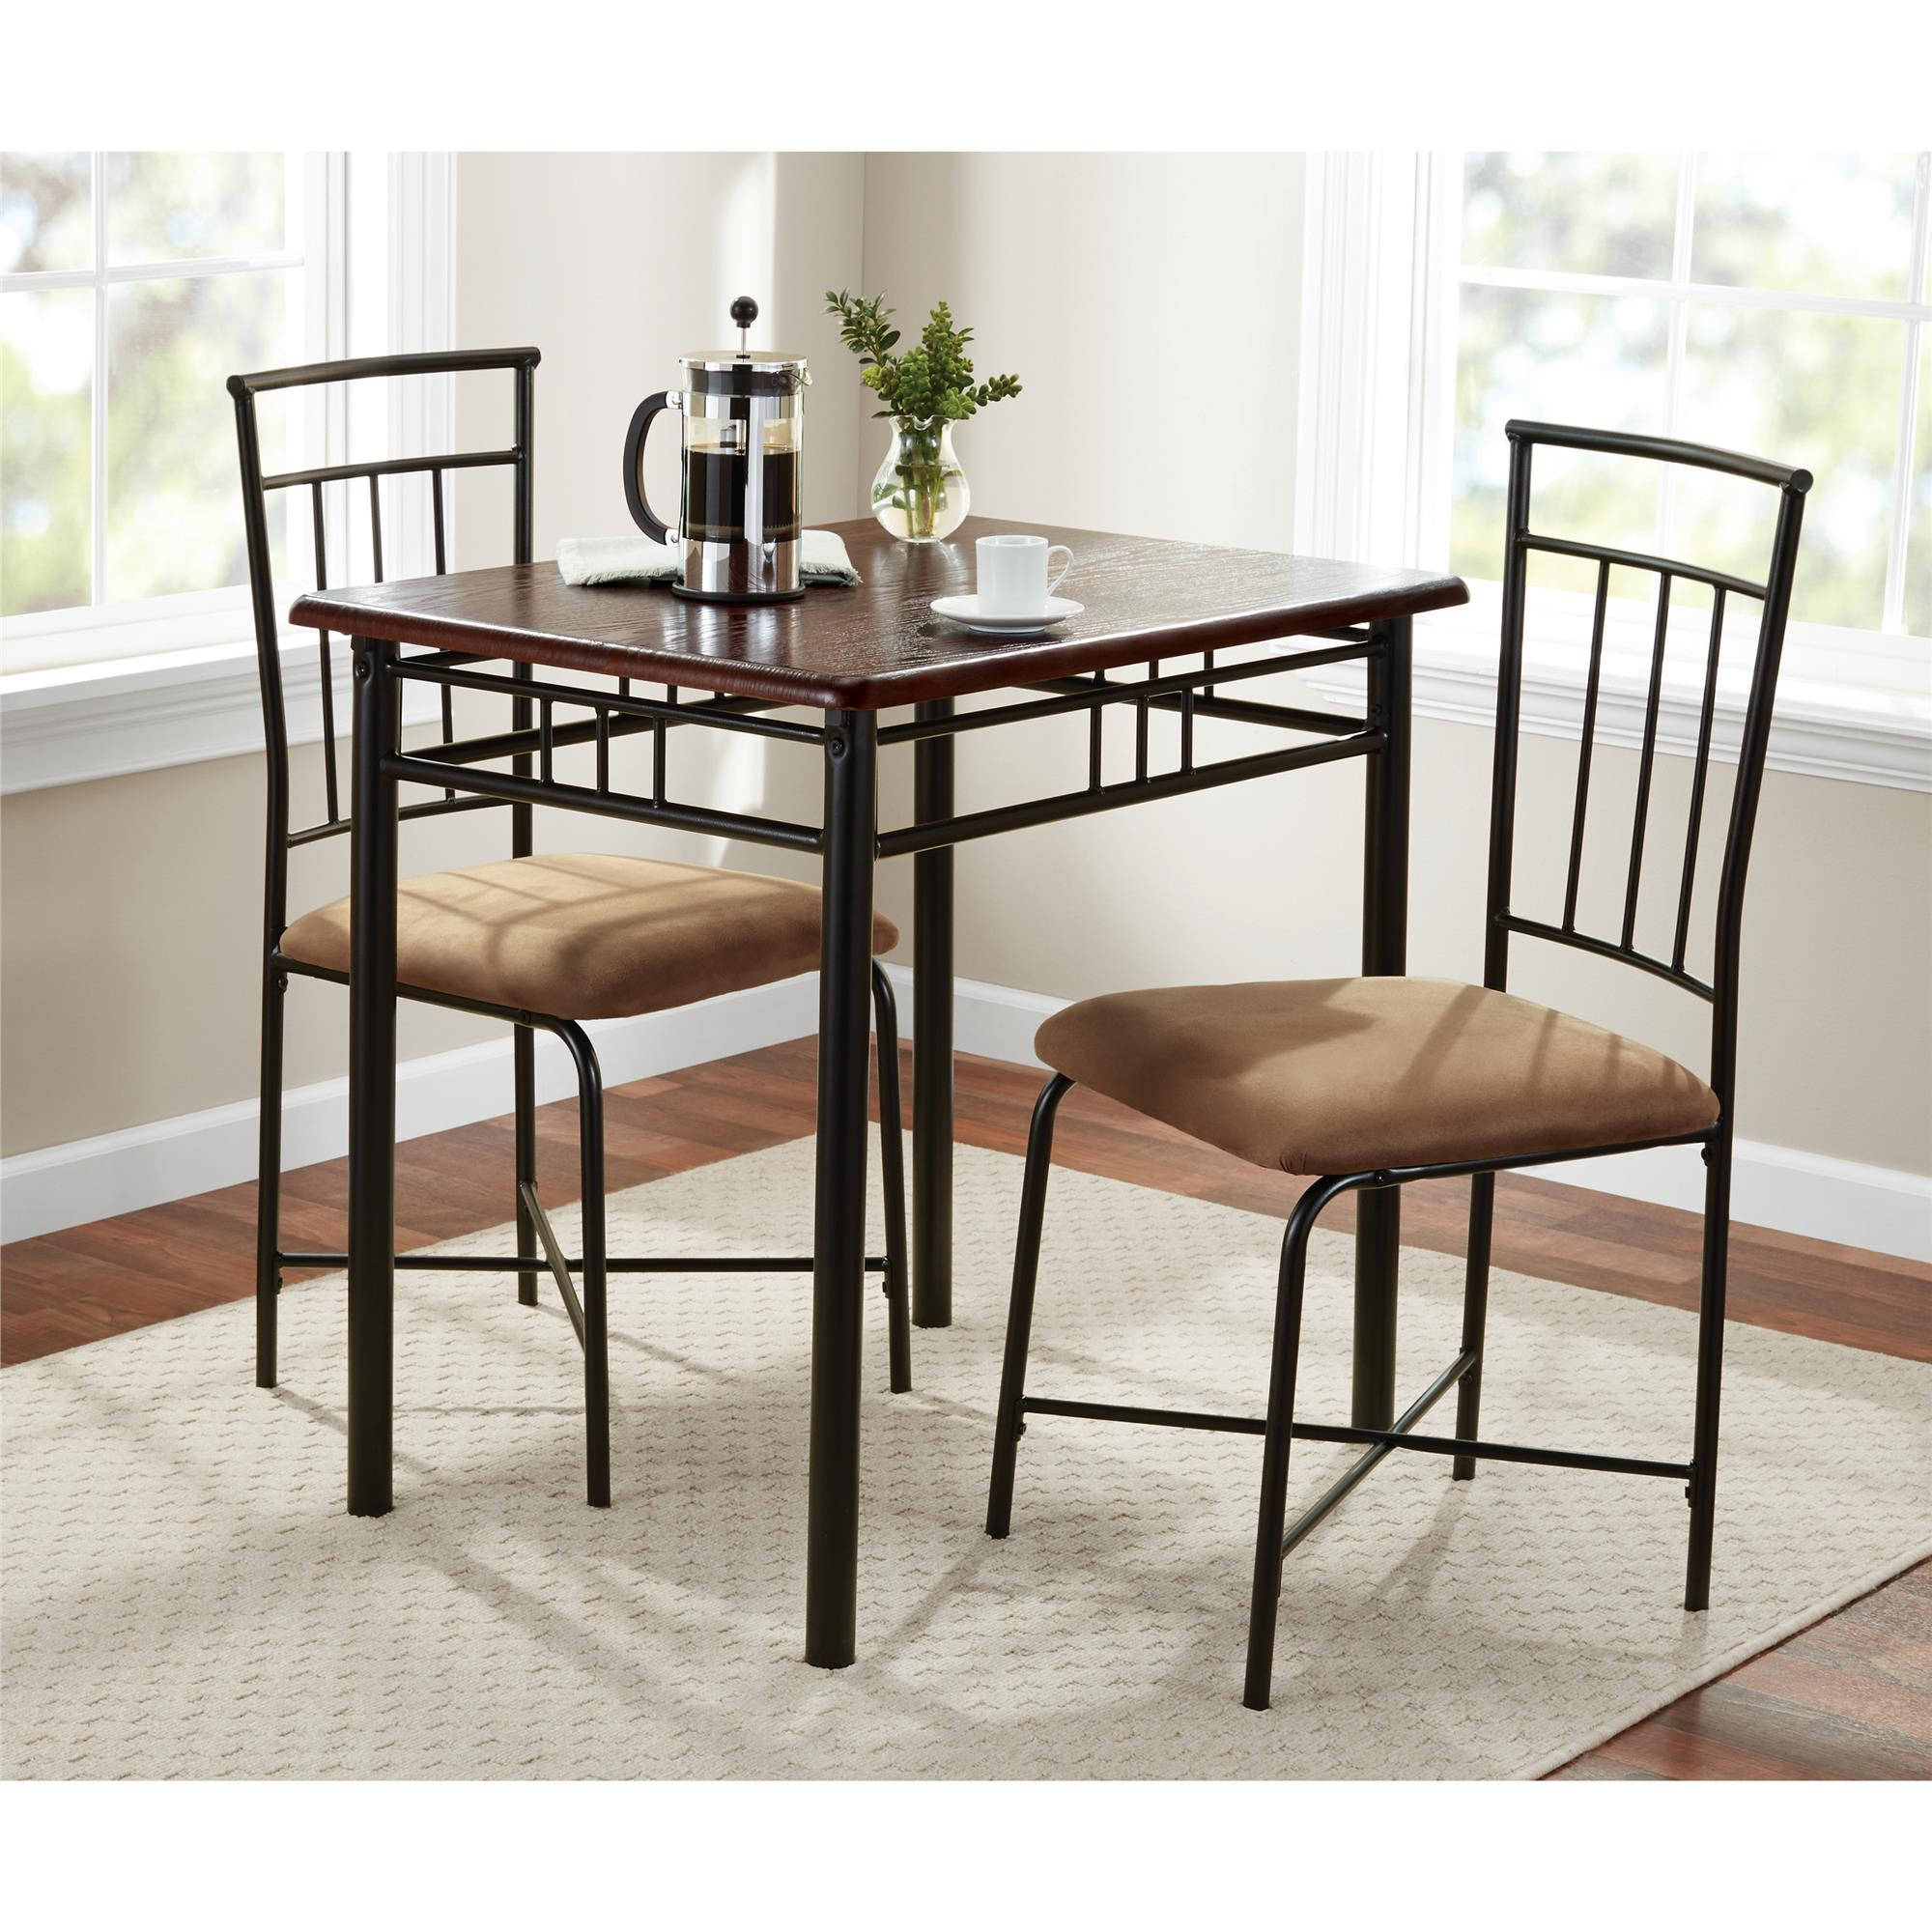 Mainstays 3 Piece Wood and Metal Dining Set